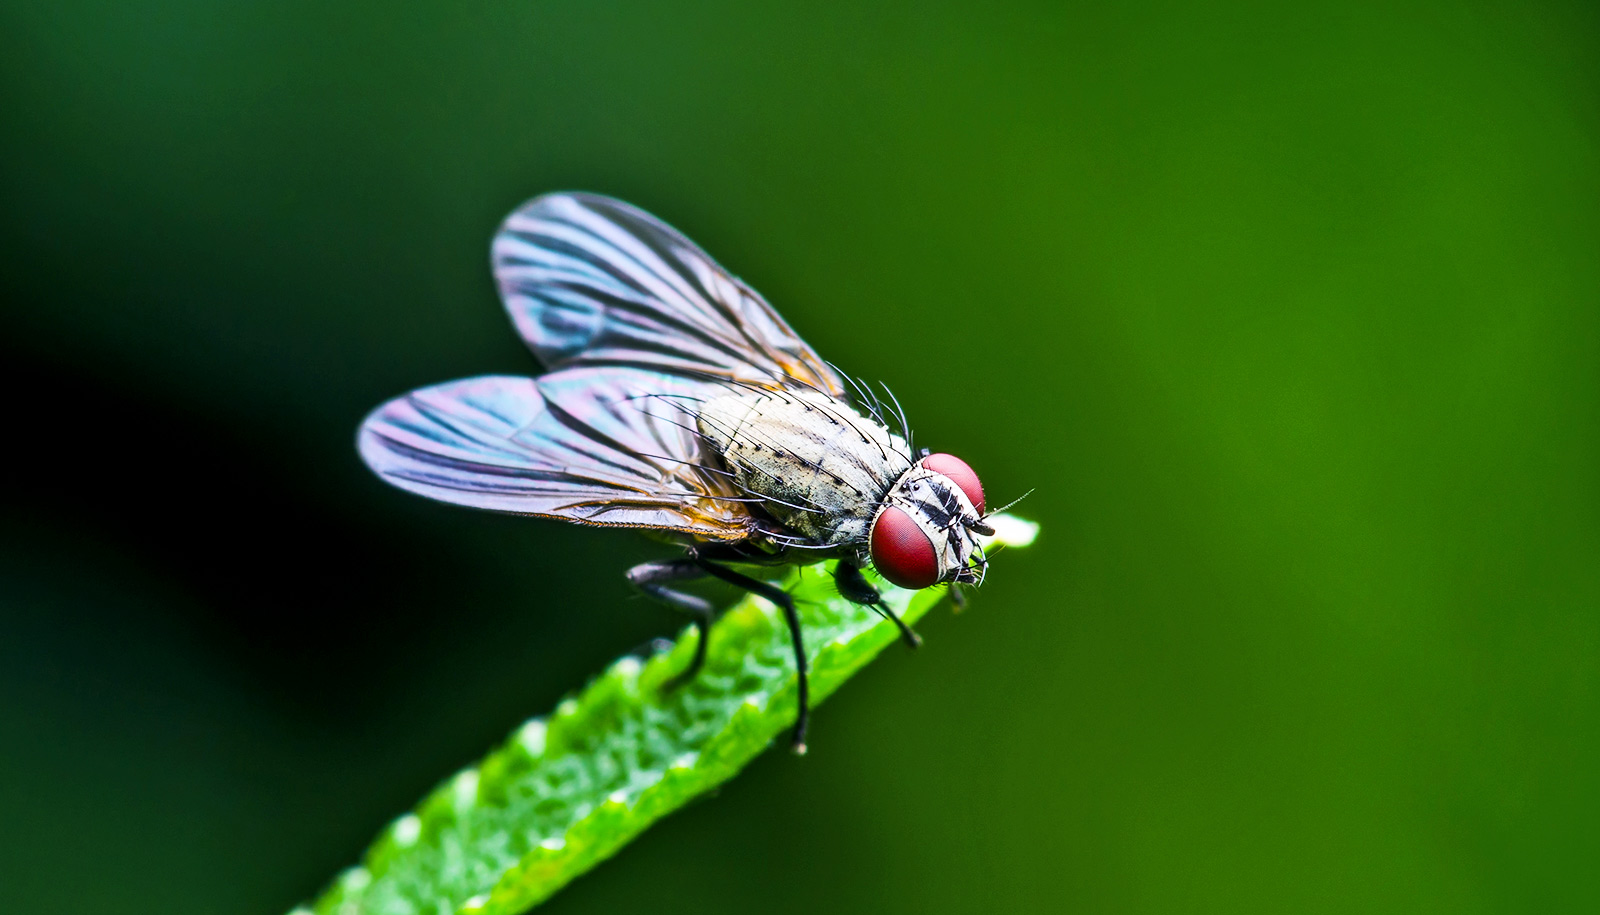 Fruit Fly Wings Hint At How Human Organs Form